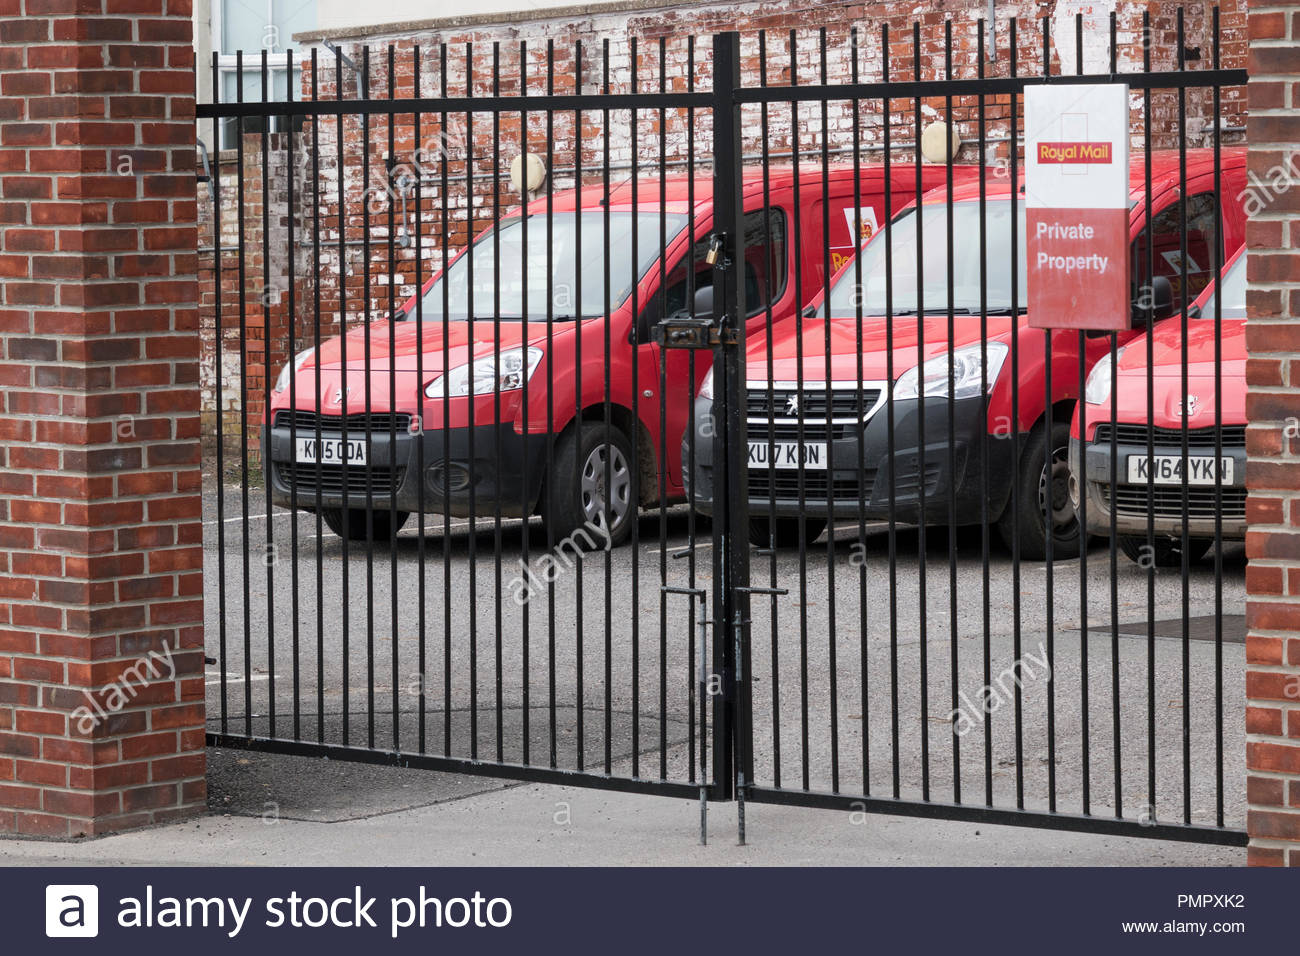 Looking through locked gates to a Royal Mail Private Property parking yard, Bridport, Dorset, England, UK - Stock Image